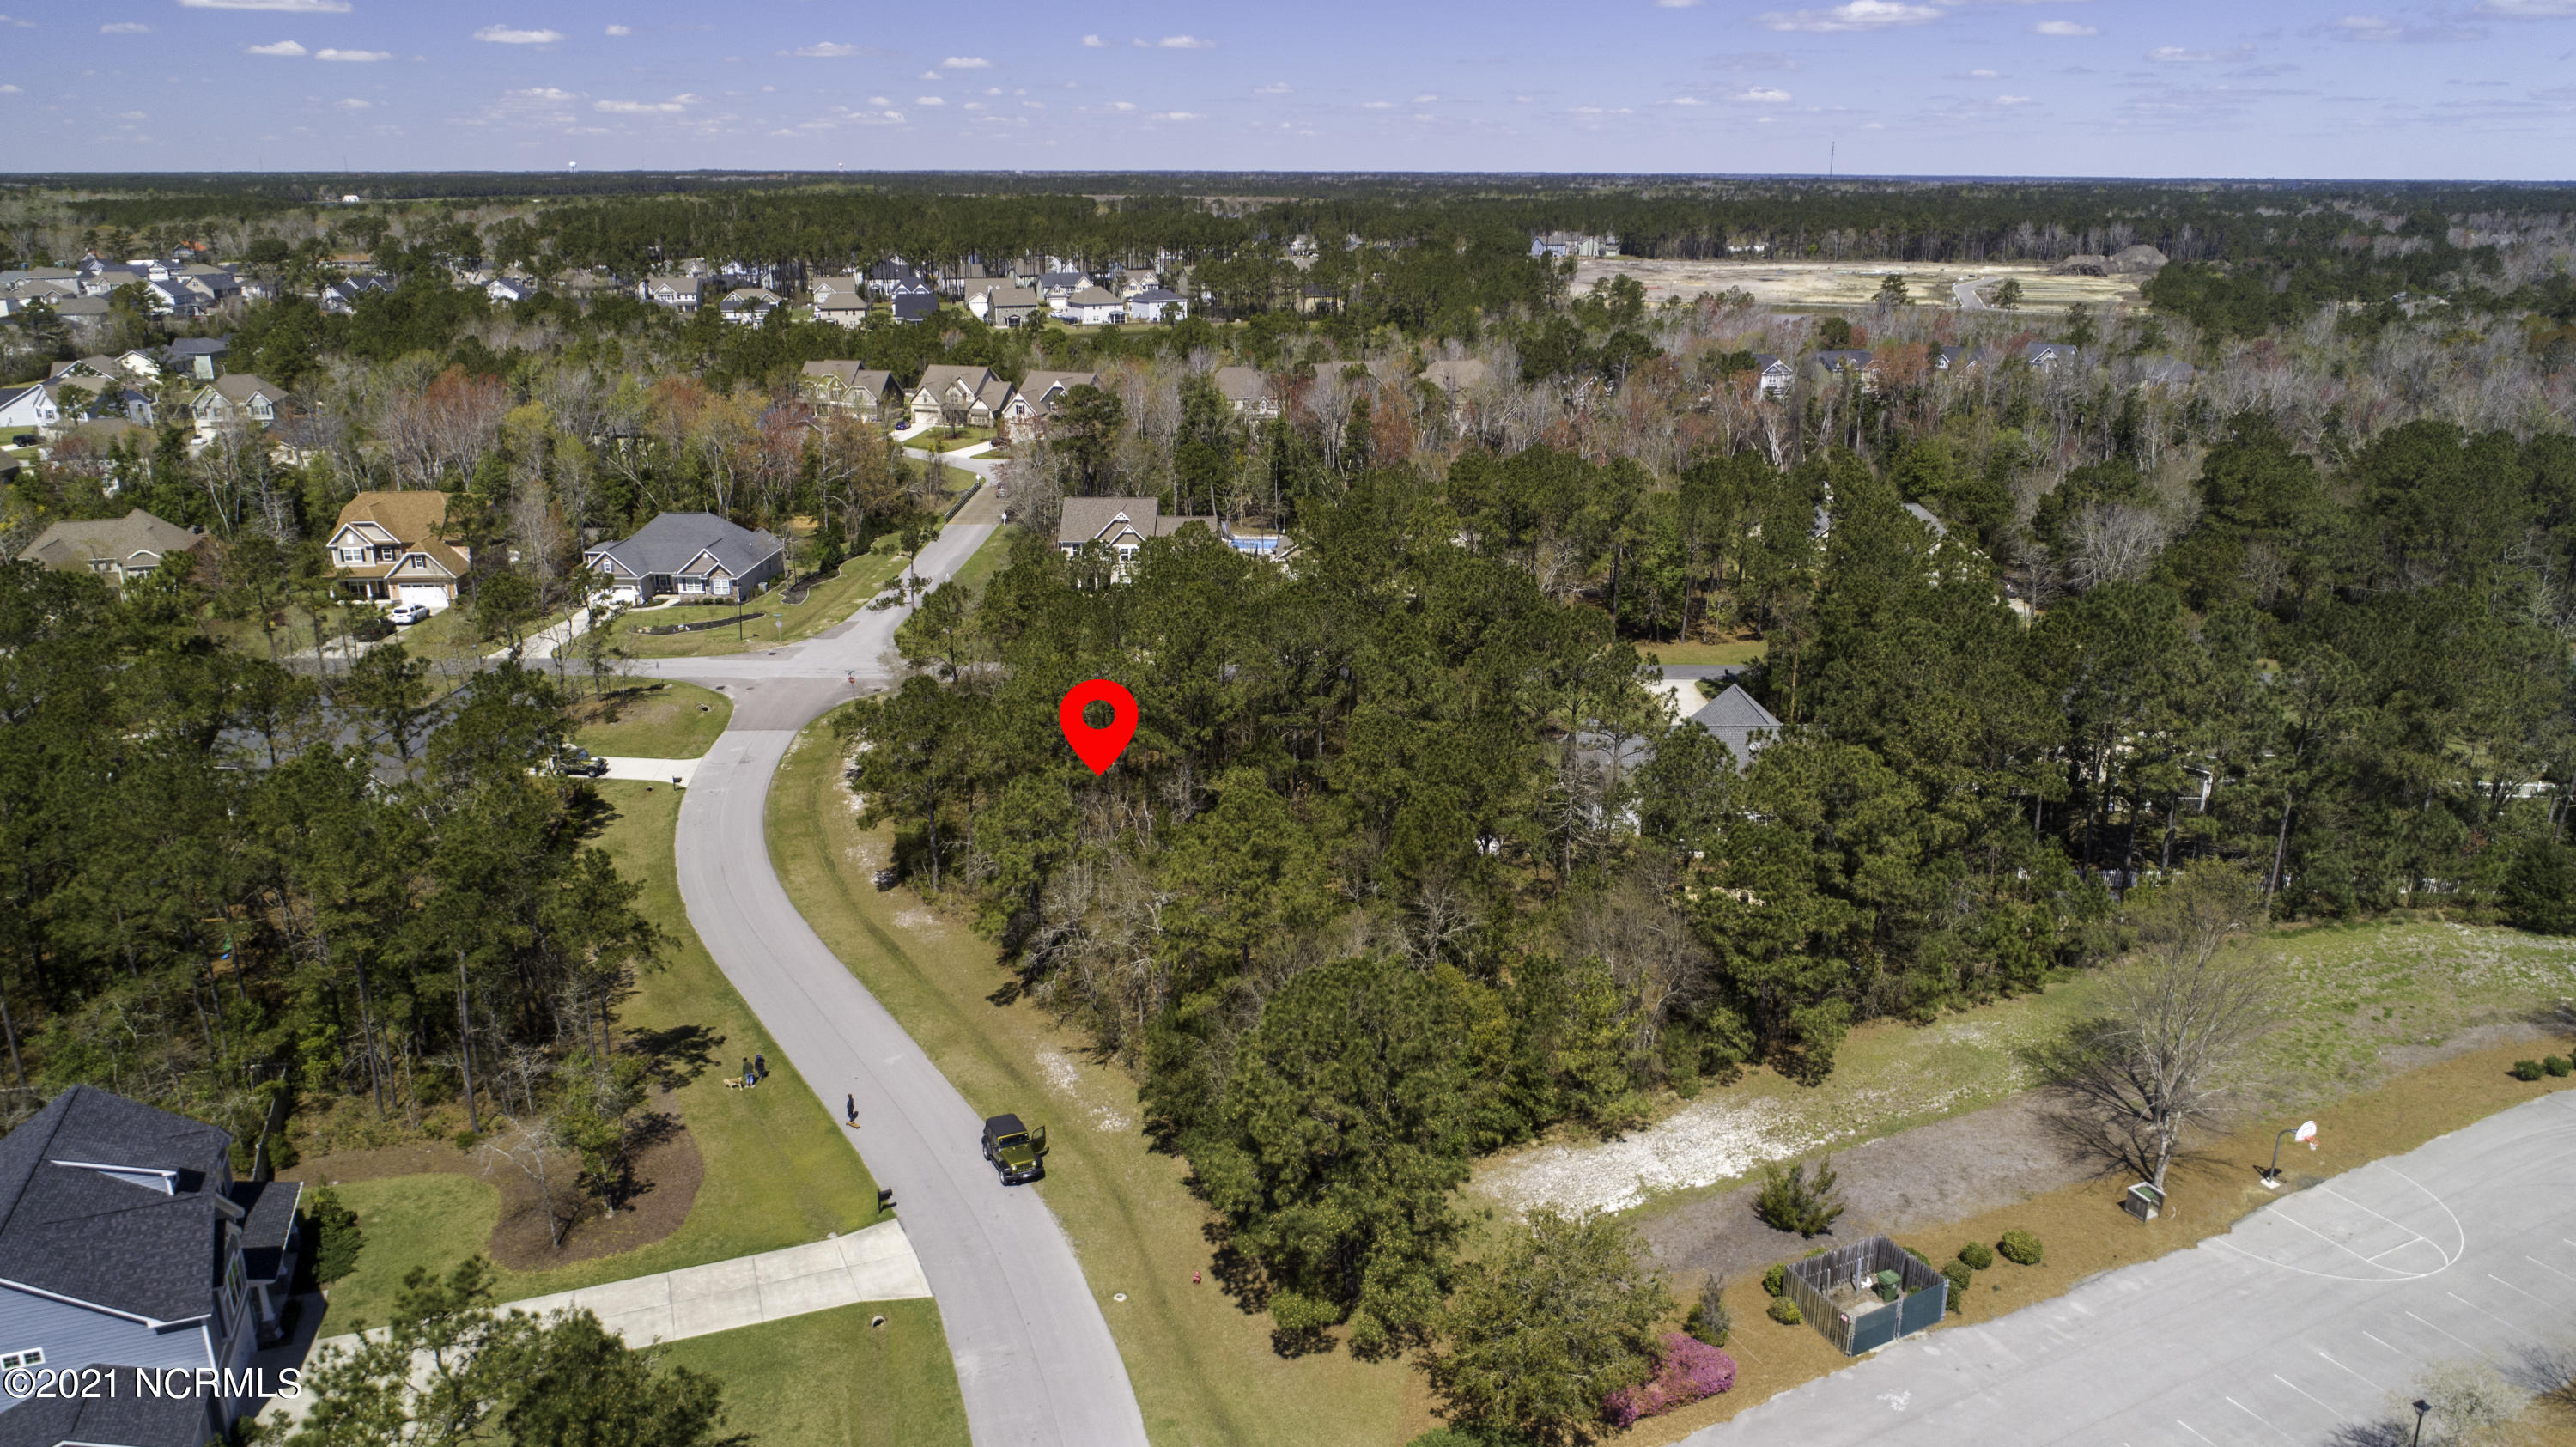 *PRICE REDUCTION* Absolutely beautiful corner lot in Mimosa Bay waiting for you to build your dream home. The community offers a clubhouse, dock, fitness center, pool, and walking trails. Water and sewer available. Nice neighborhood just minutes from the ocean, shopping, restaurants, medical offices, dental offices, vet services for your fur babies! It's all here. Bring your plans and walk this property. You will be glad you did.